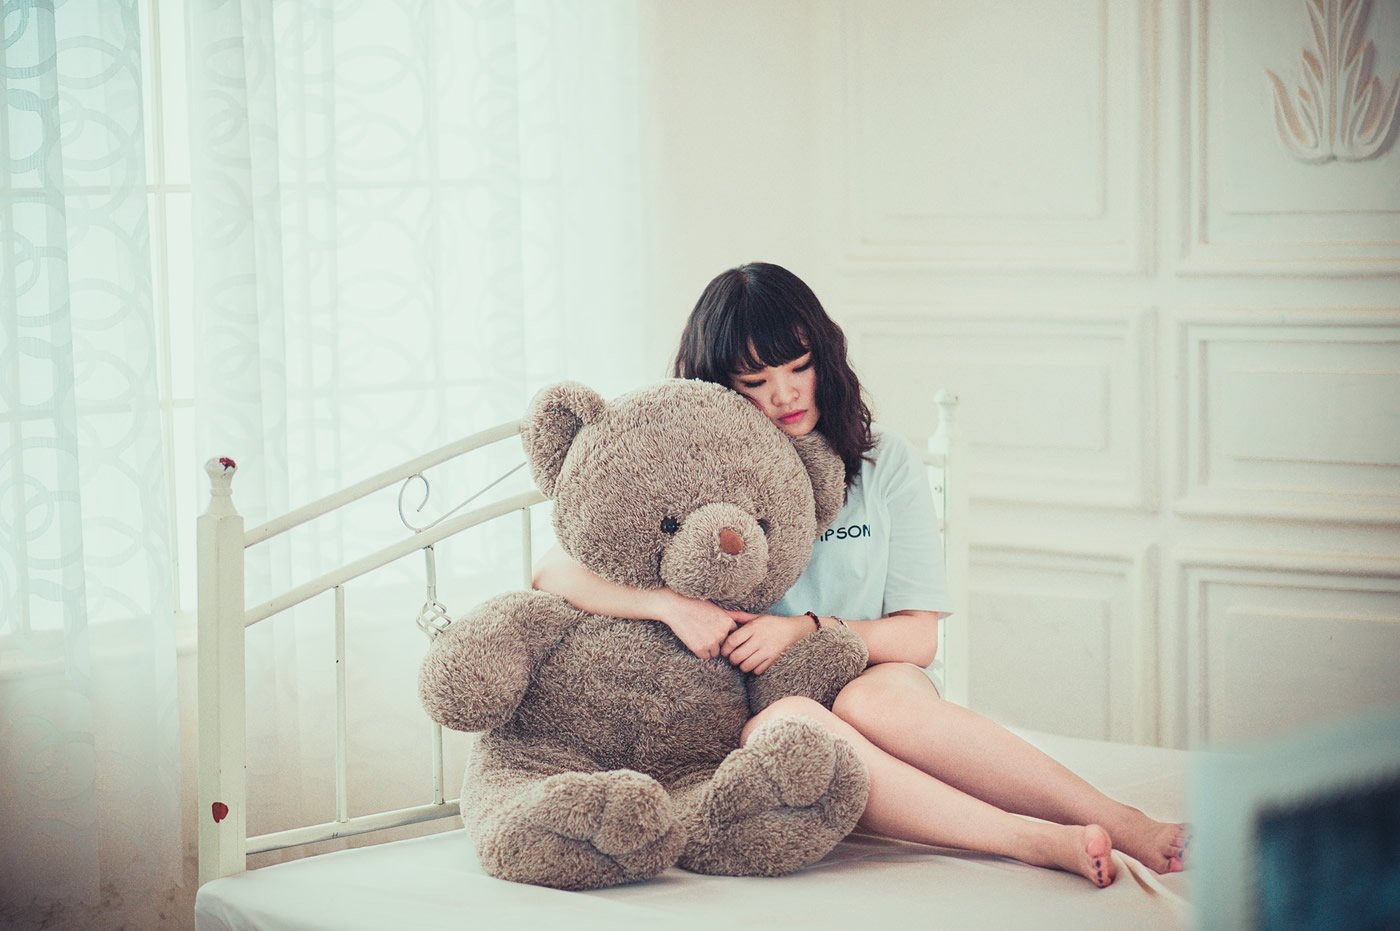 This shows a teenage girl and a teddybear